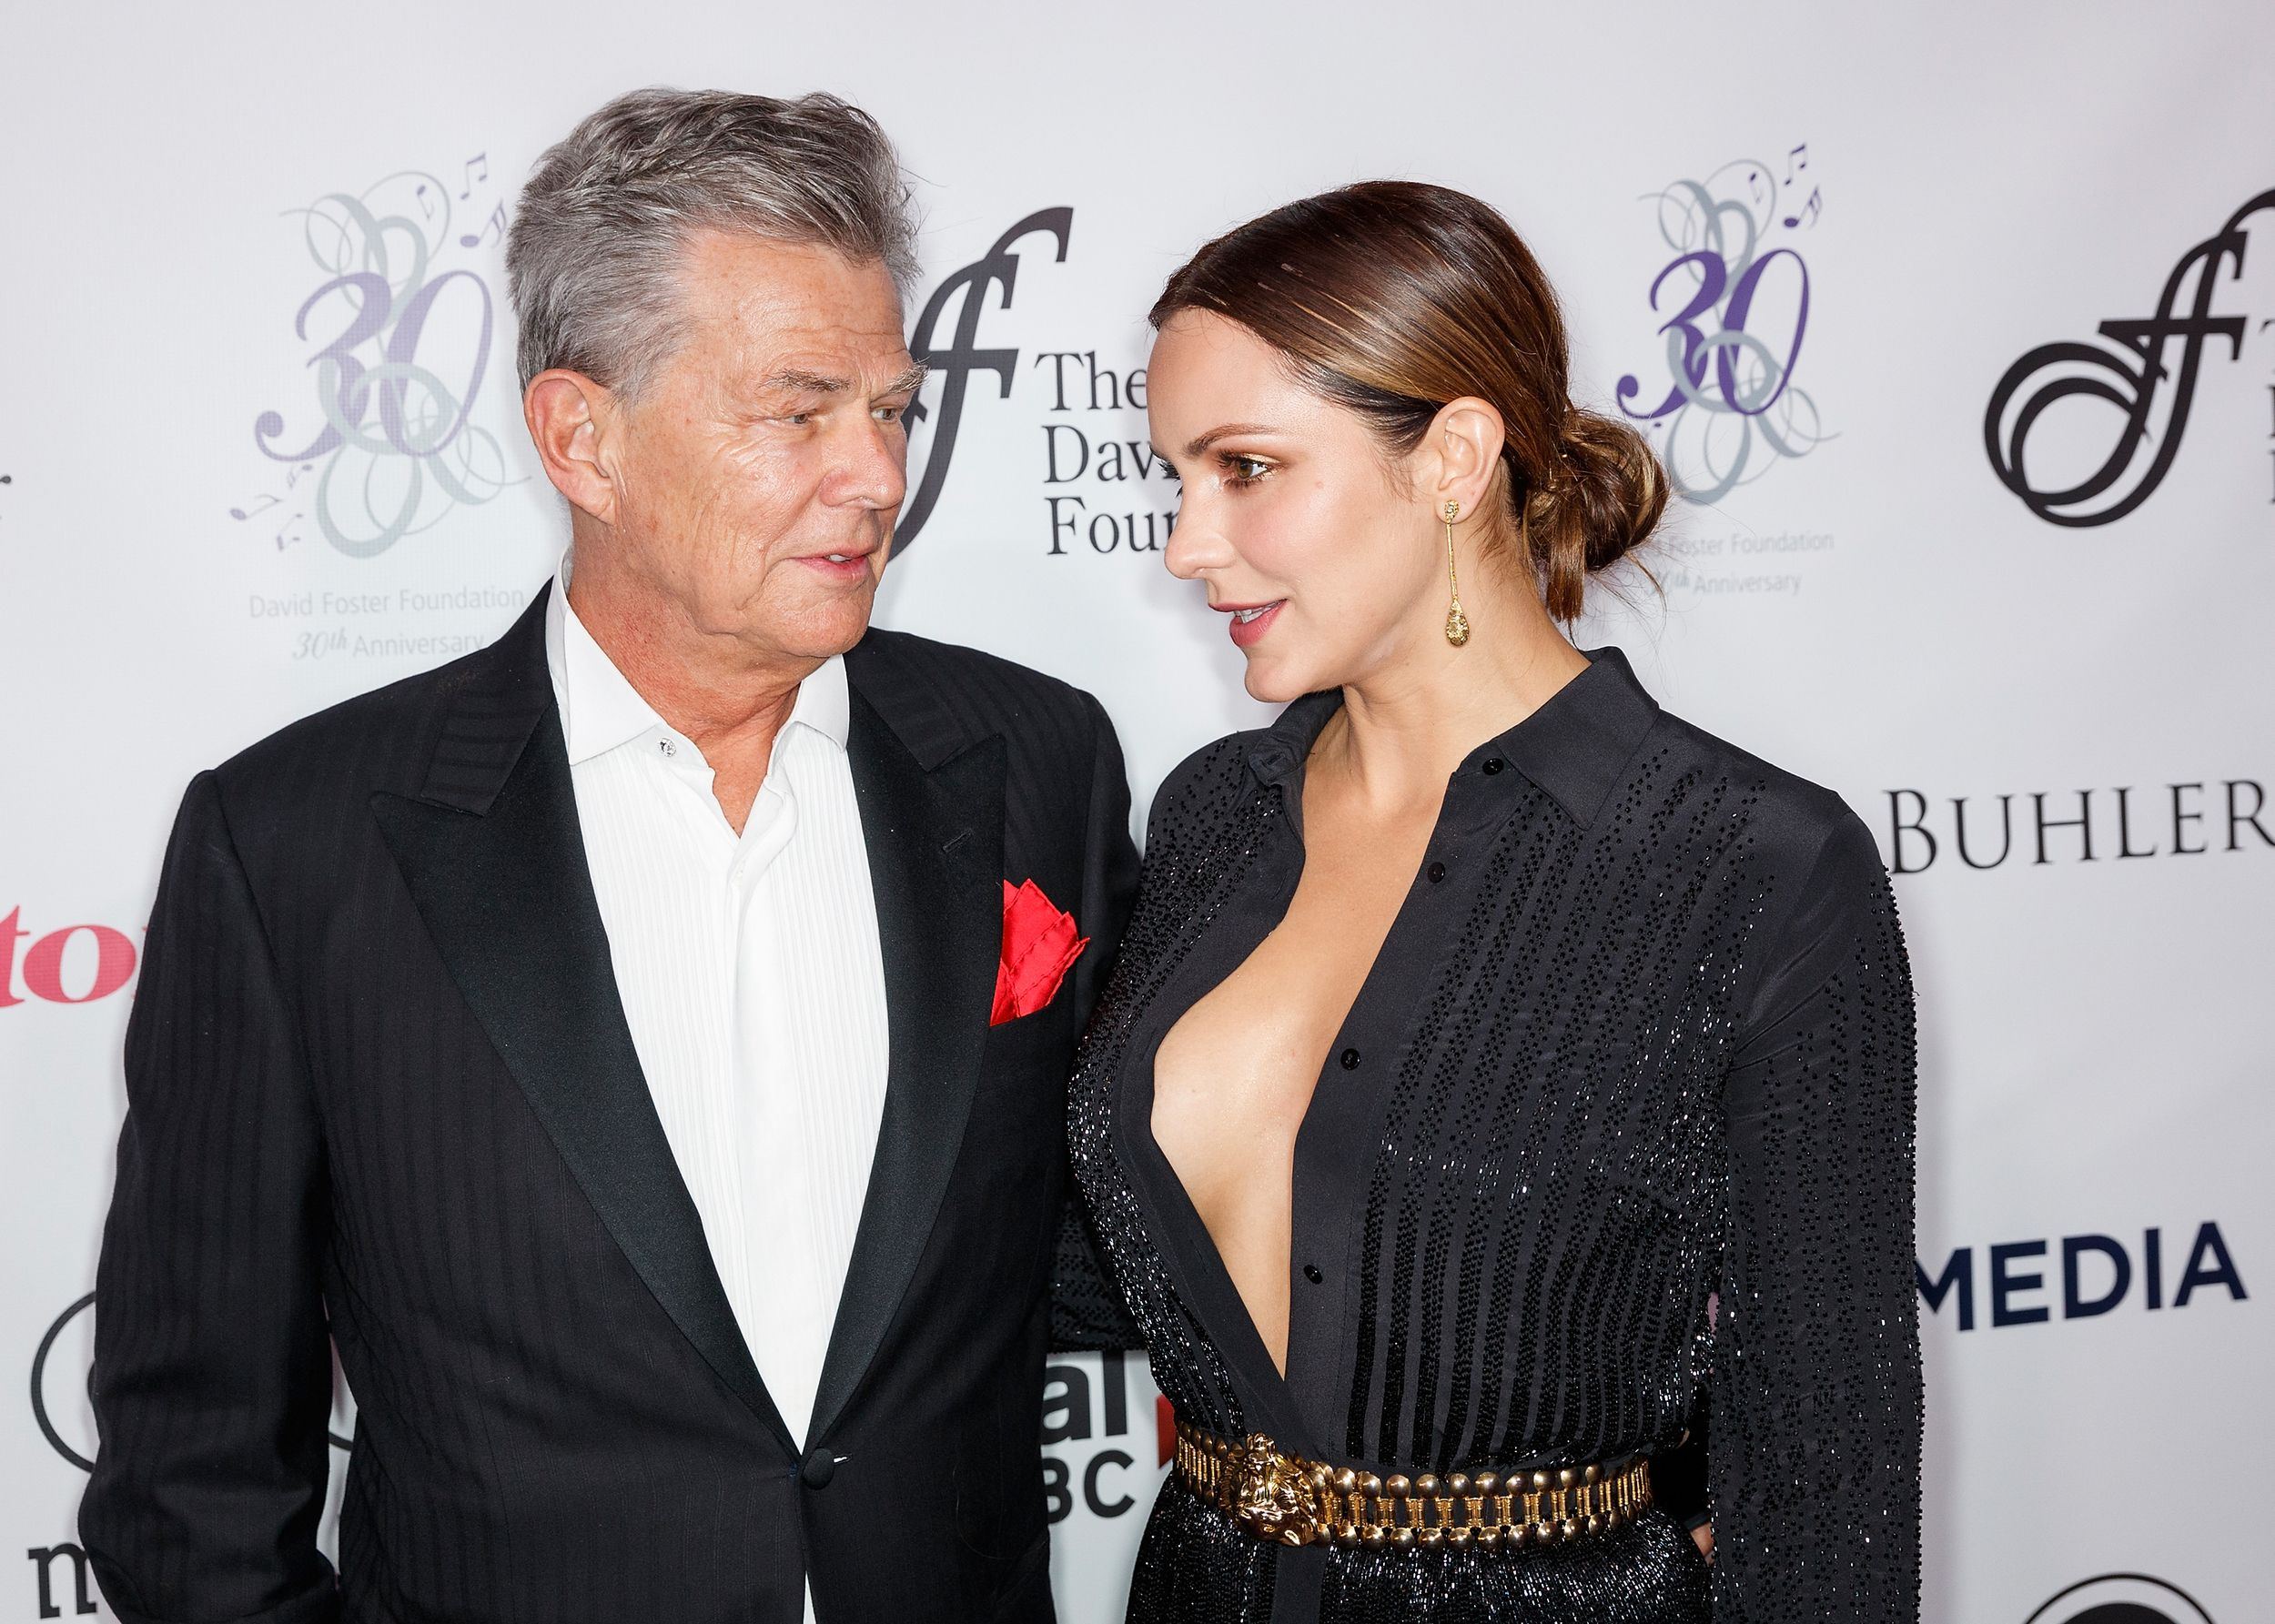 Katharine Mcphee And David Foster Confirmed Their Relationship At The Met Gala By Holding Hands Met Gala The Fosters Gala